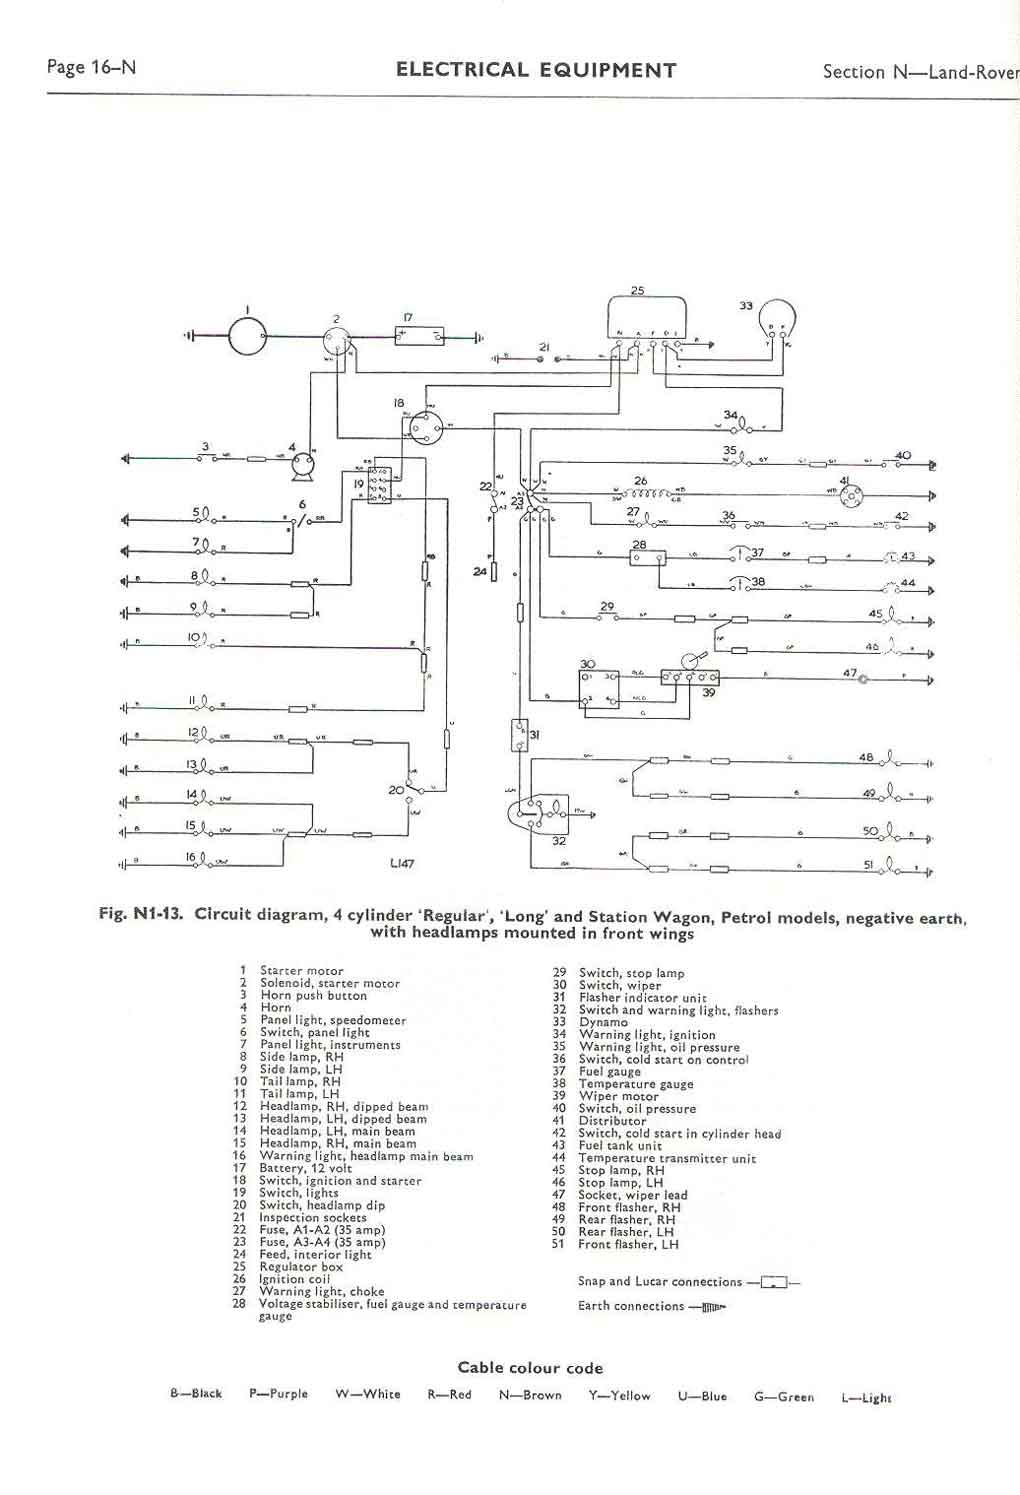 Rover Wiring Diagrams Data Schematic 1993 Range Diagram Land Faq Repair Maintenance Series Electrical Rh Lrfaq Org L322